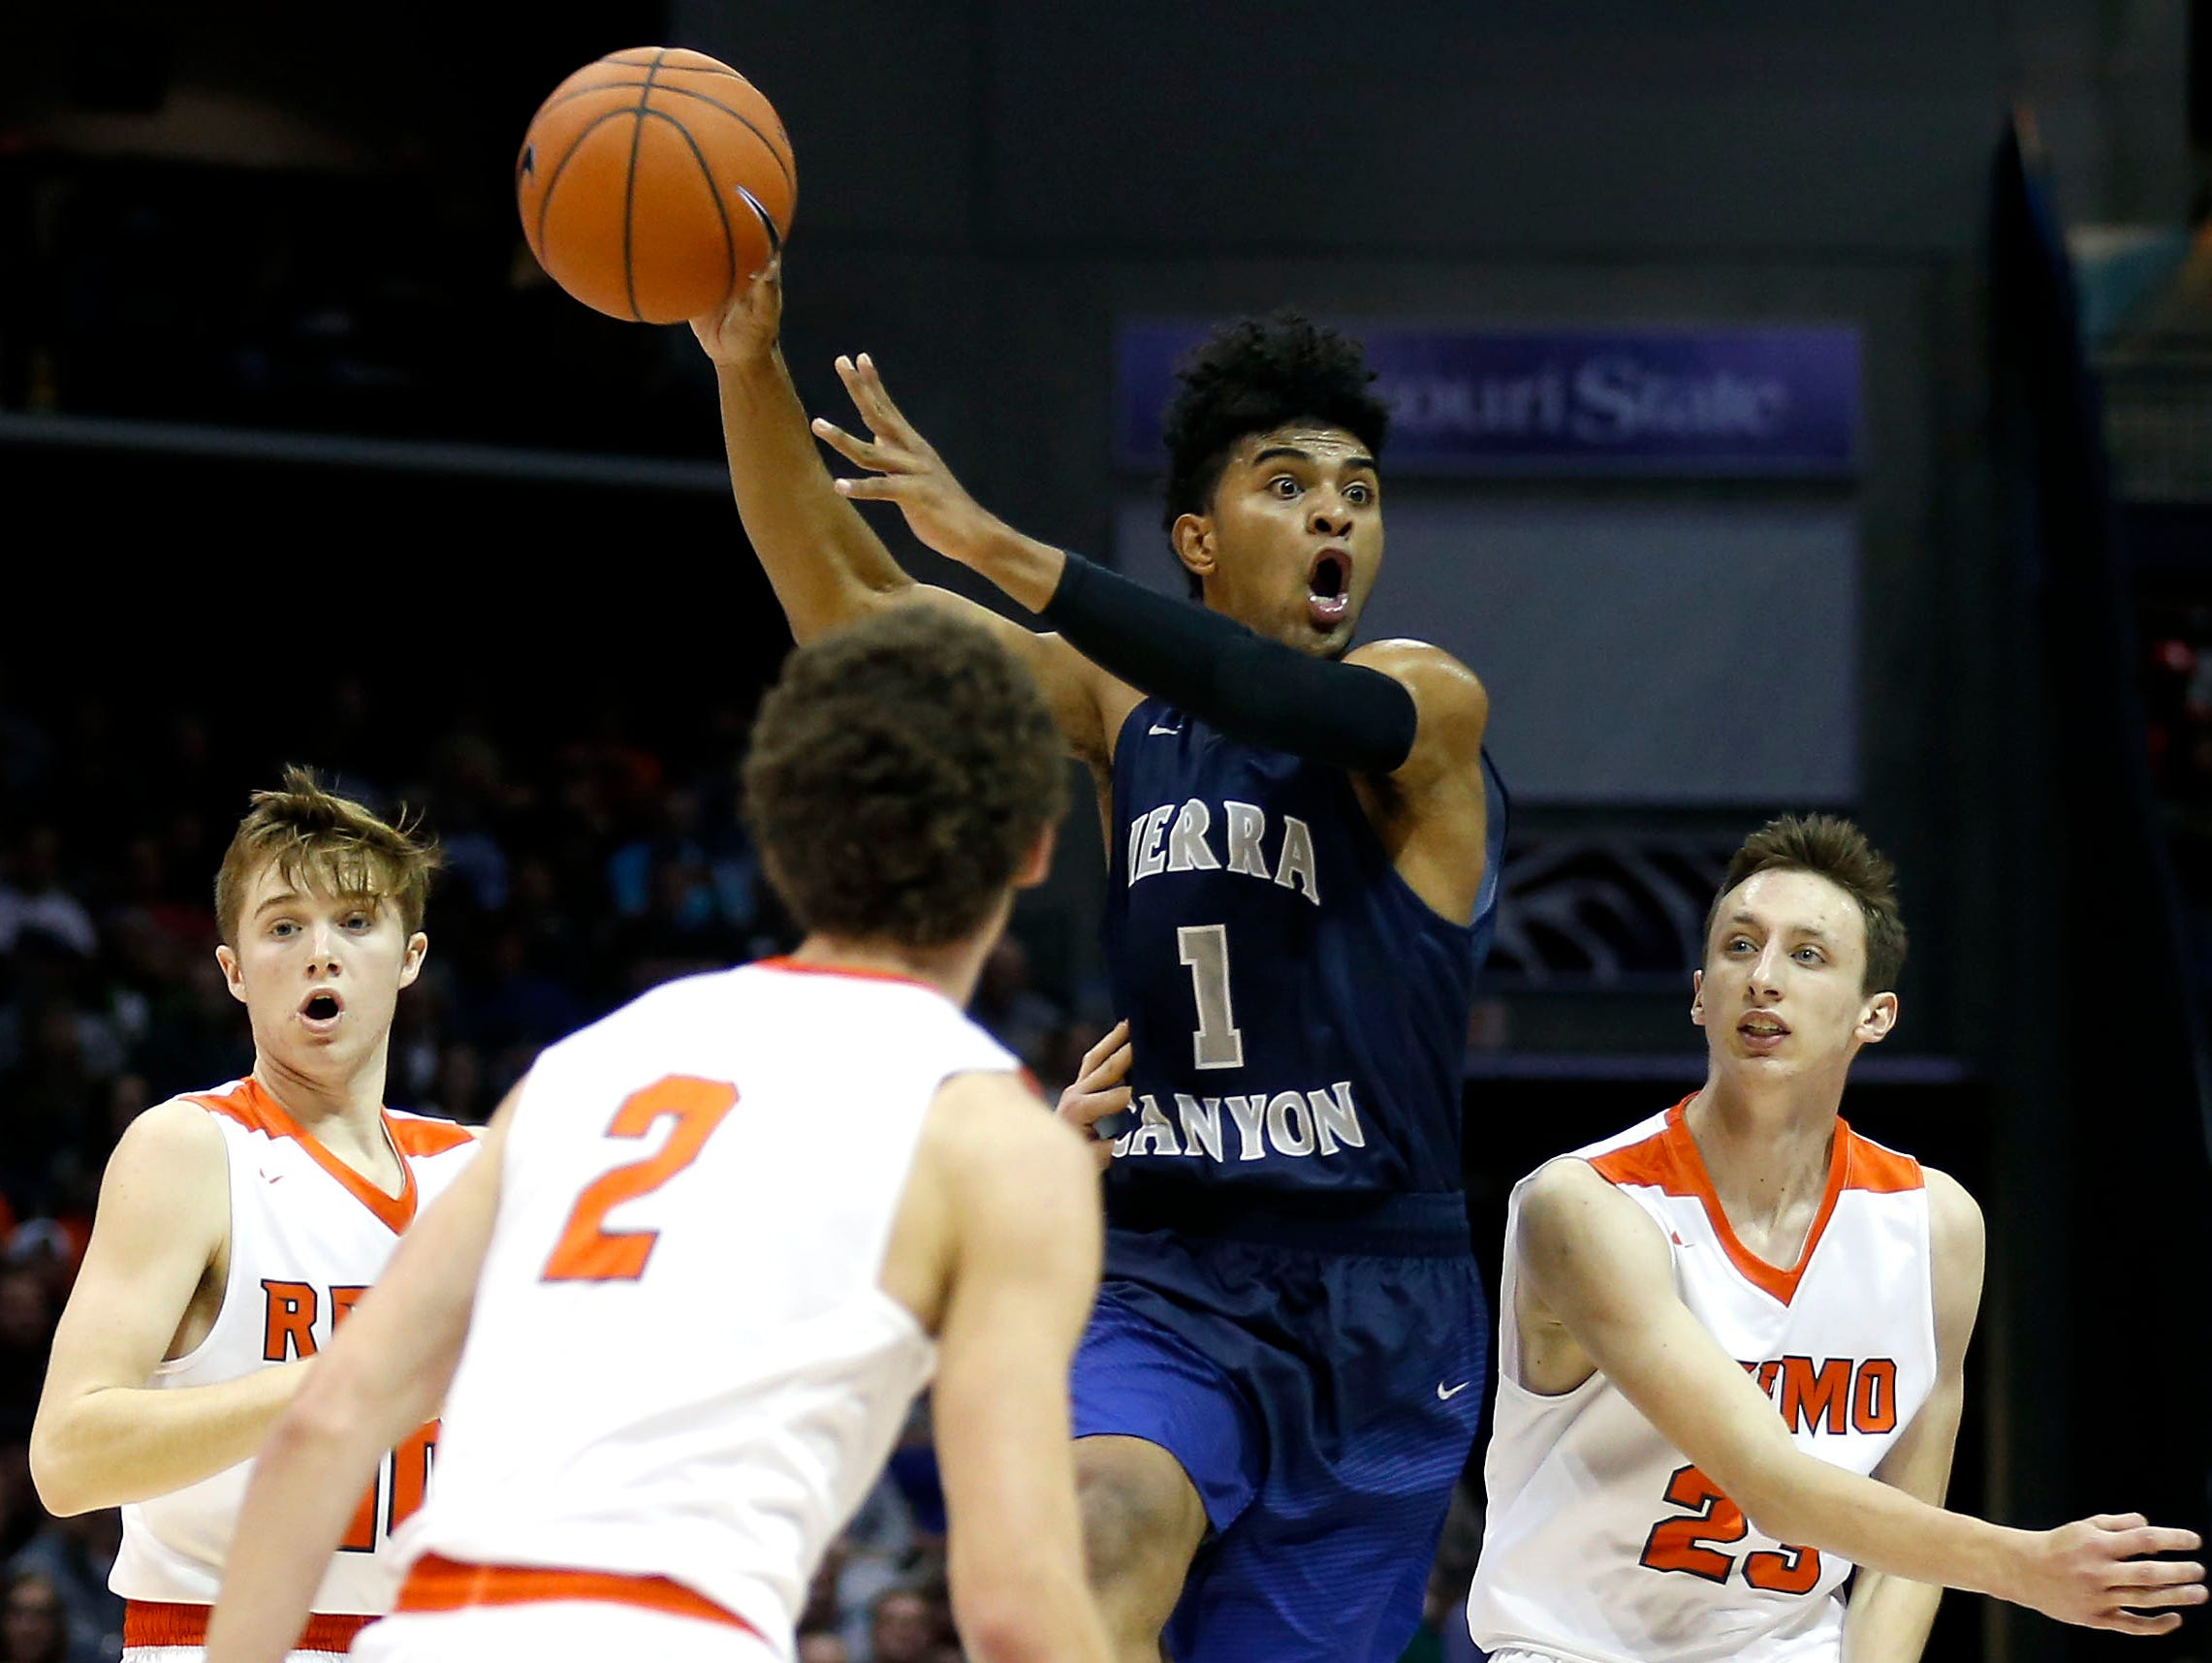 Sierra Canyons Remy Martin goes airborne as he winds up to pass the ball to a teammate as the Trailblazers take on the Republic Tigers in the first round of the Tournament of Champions at JQH Arena on Thursday, Jan. 12, 2017.